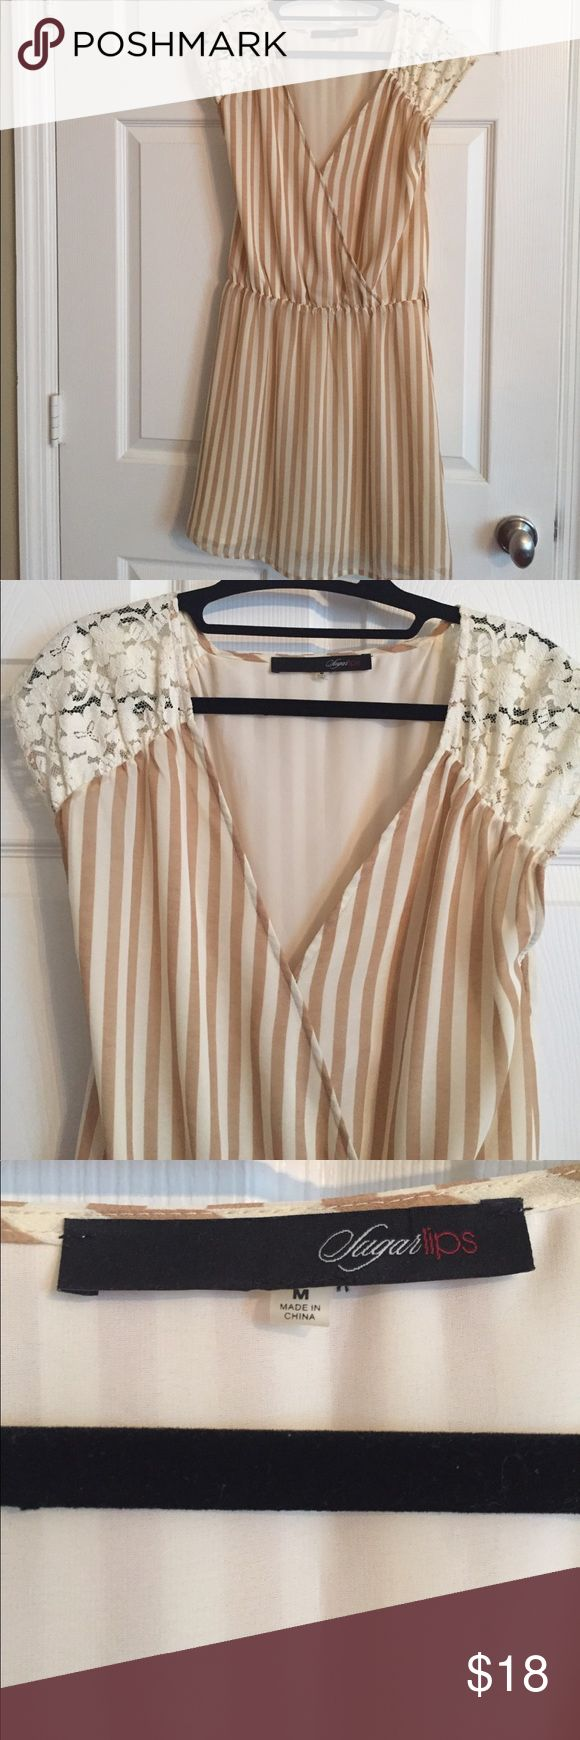 Cream Striped Dress Purchased from Nordstrom. Has belt loops as well to finish the look! Delicate and soft combo with lace sleeves. Great dress to wear to work or a night out! Item is lined. sugar lips Dresses Mini